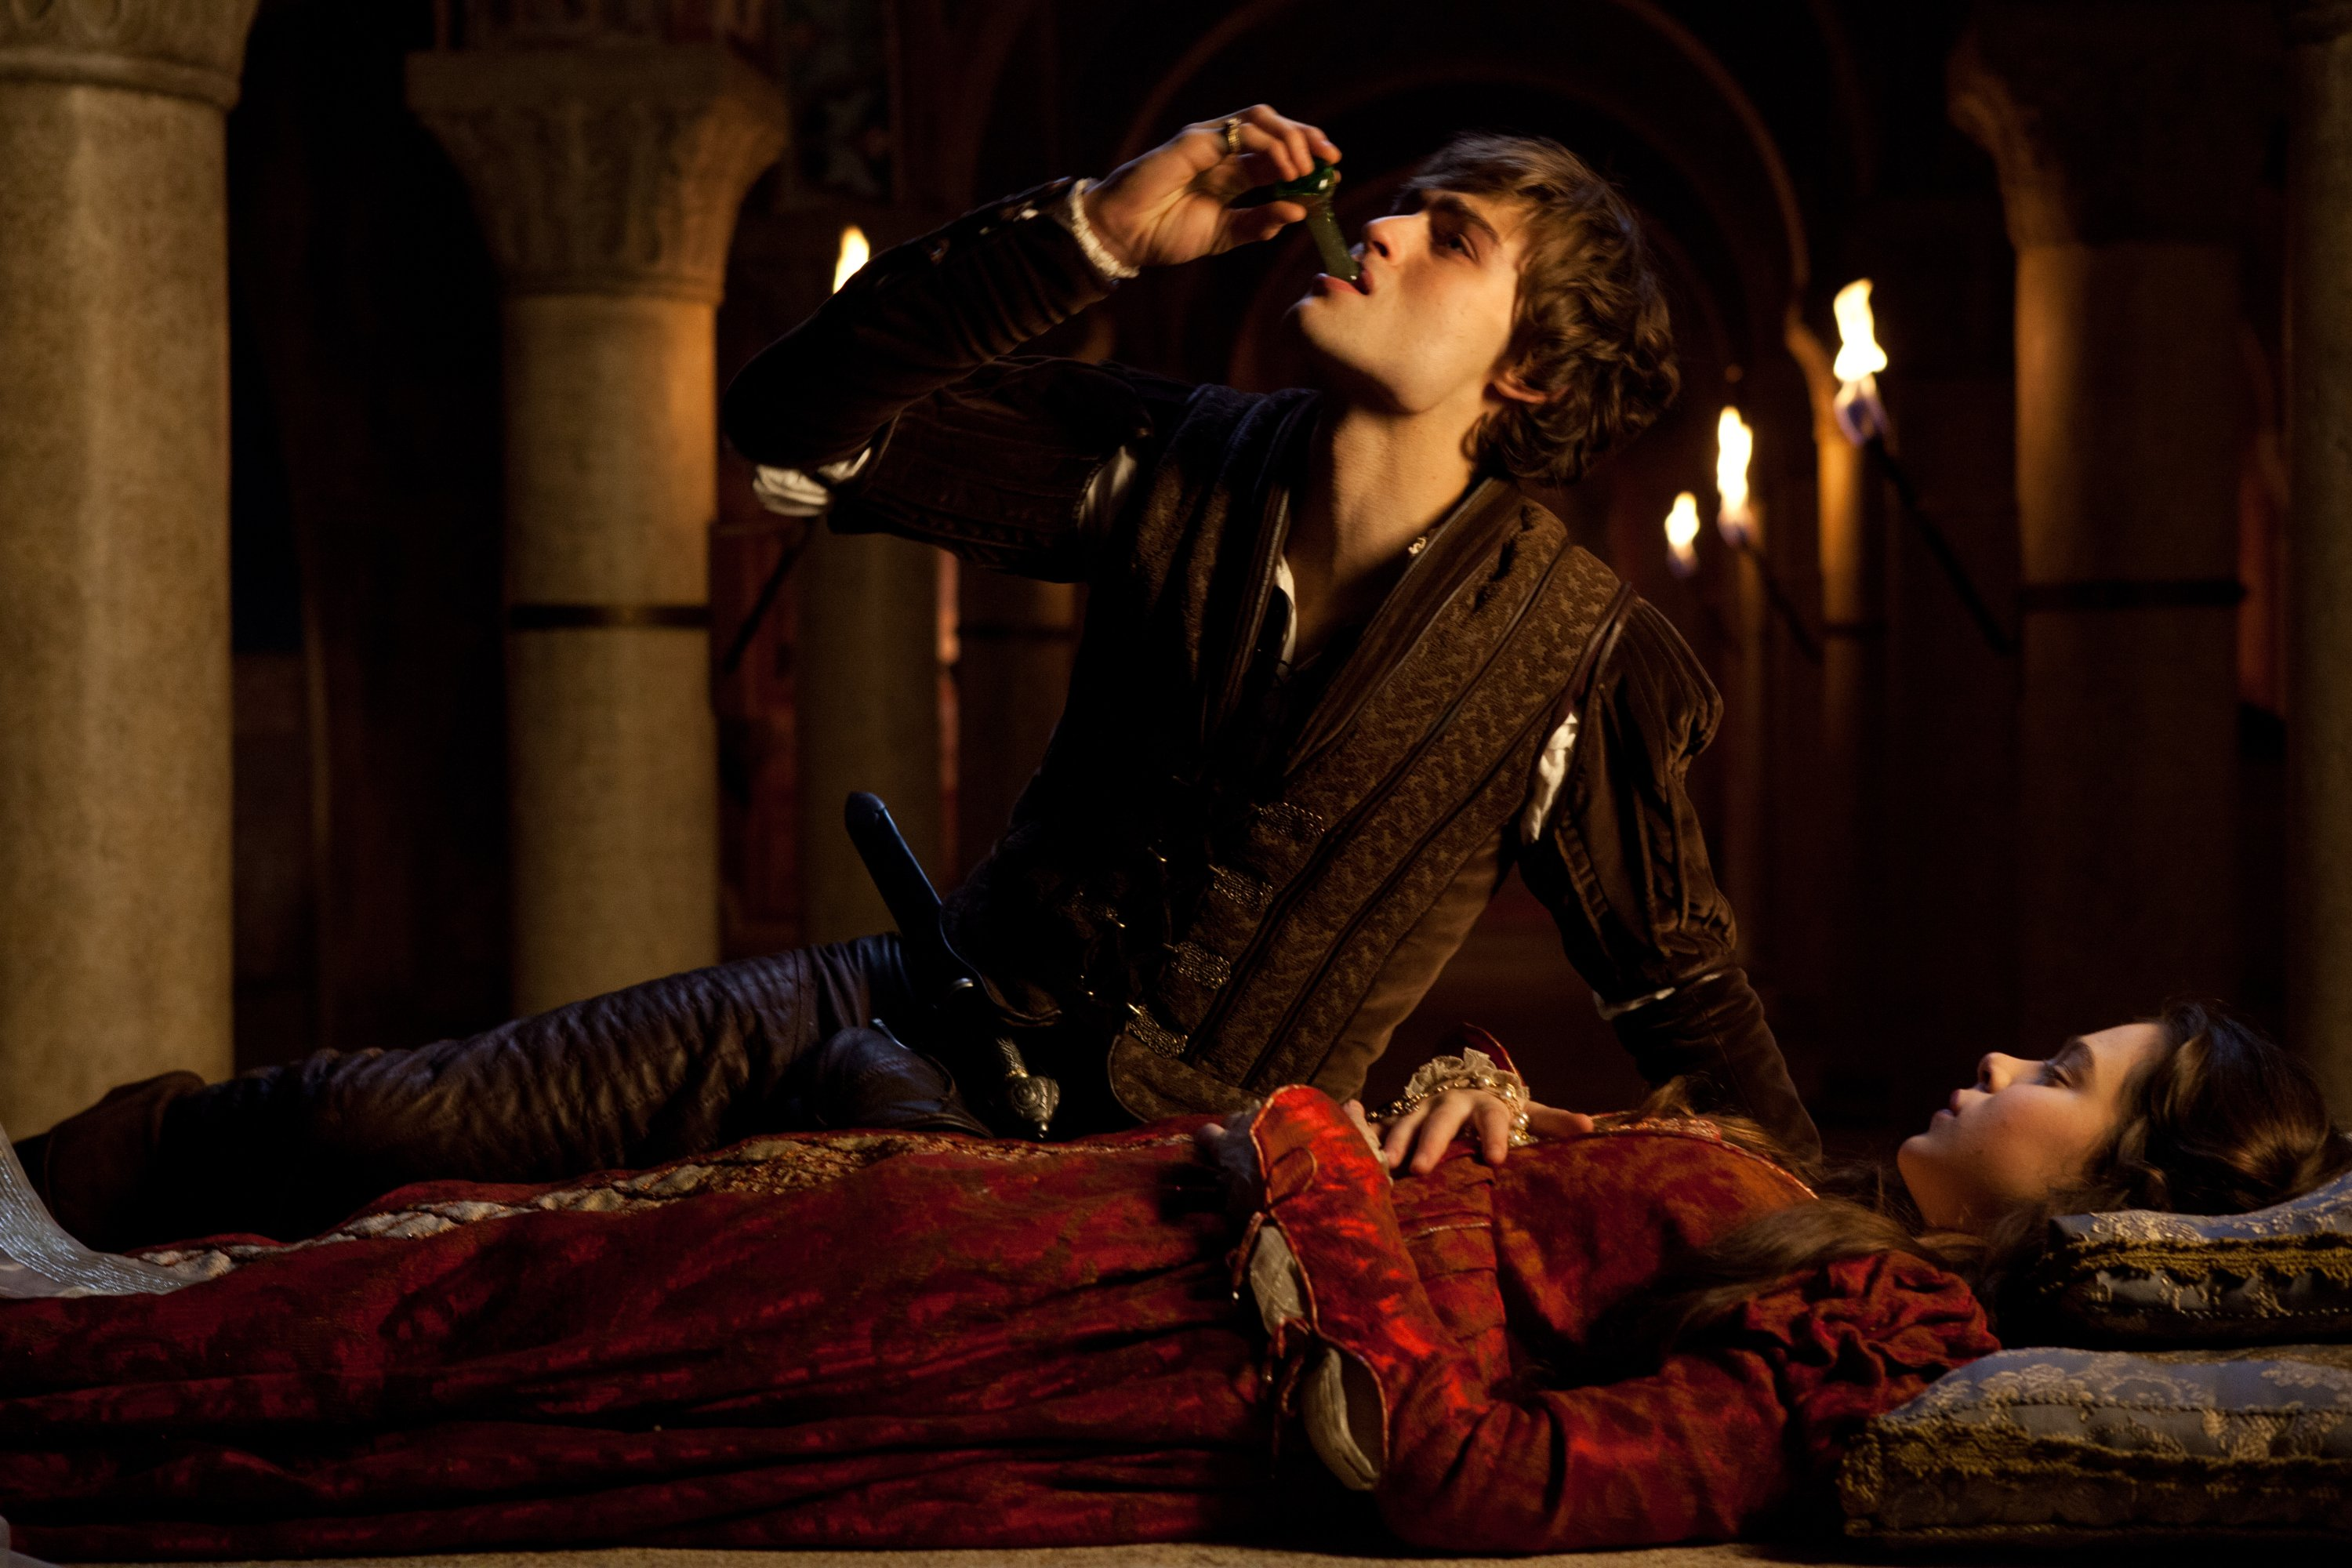 a discussion of new ending for romeo and juliet Romeo and juliet alternate ending beginning at act 5, scene 3, line 119 romeo romeo: here's to my love [drinks]oh, thieving apothecary have you even a heart that you should be so cruel.